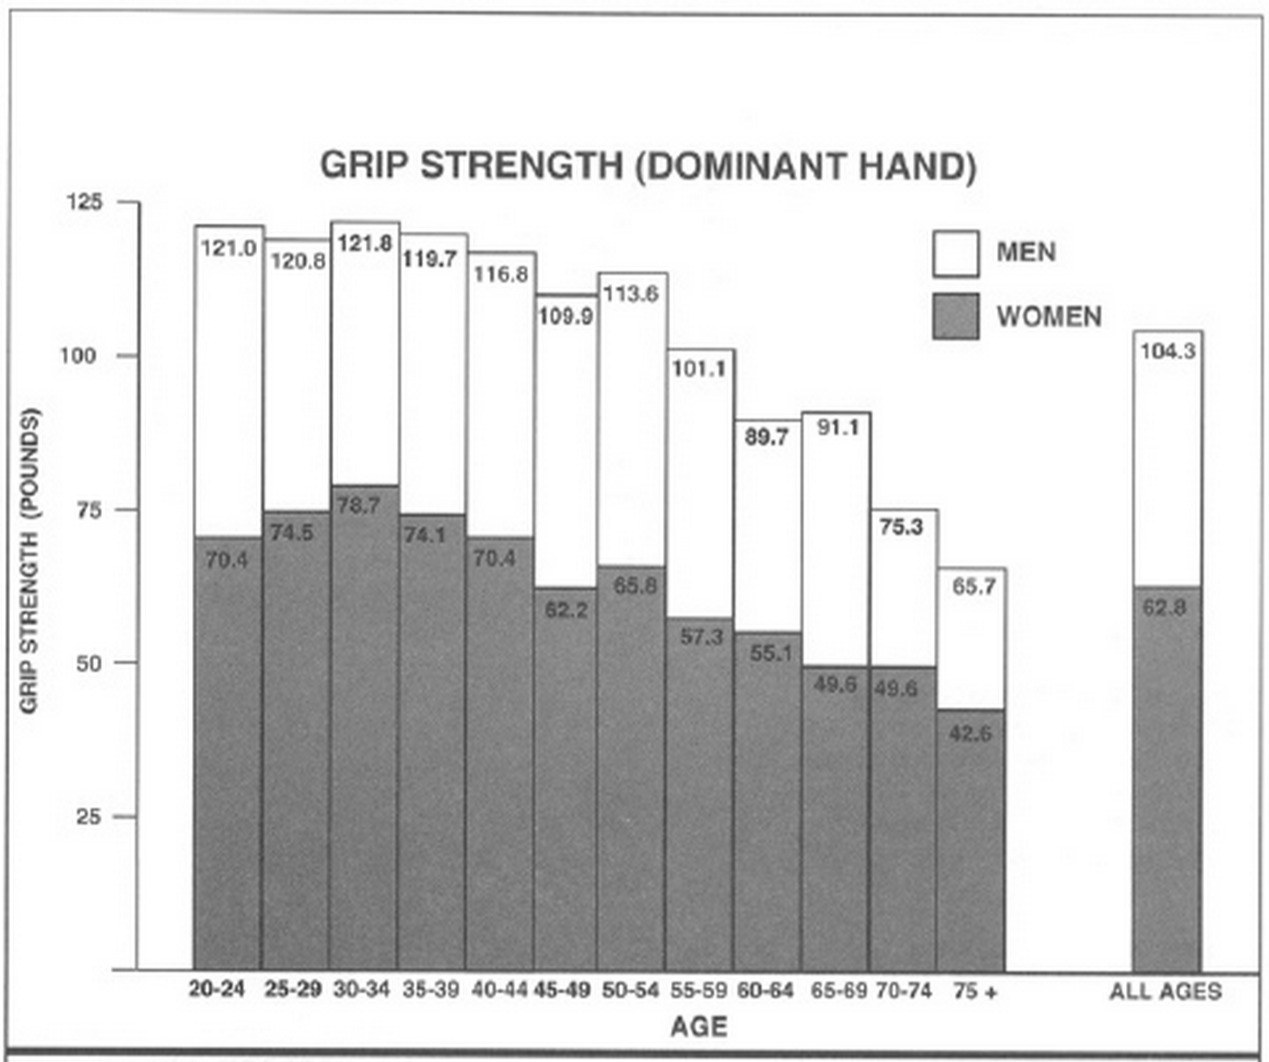 grip strength norms for the dominant hand using the. Black Bedroom Furniture Sets. Home Design Ideas